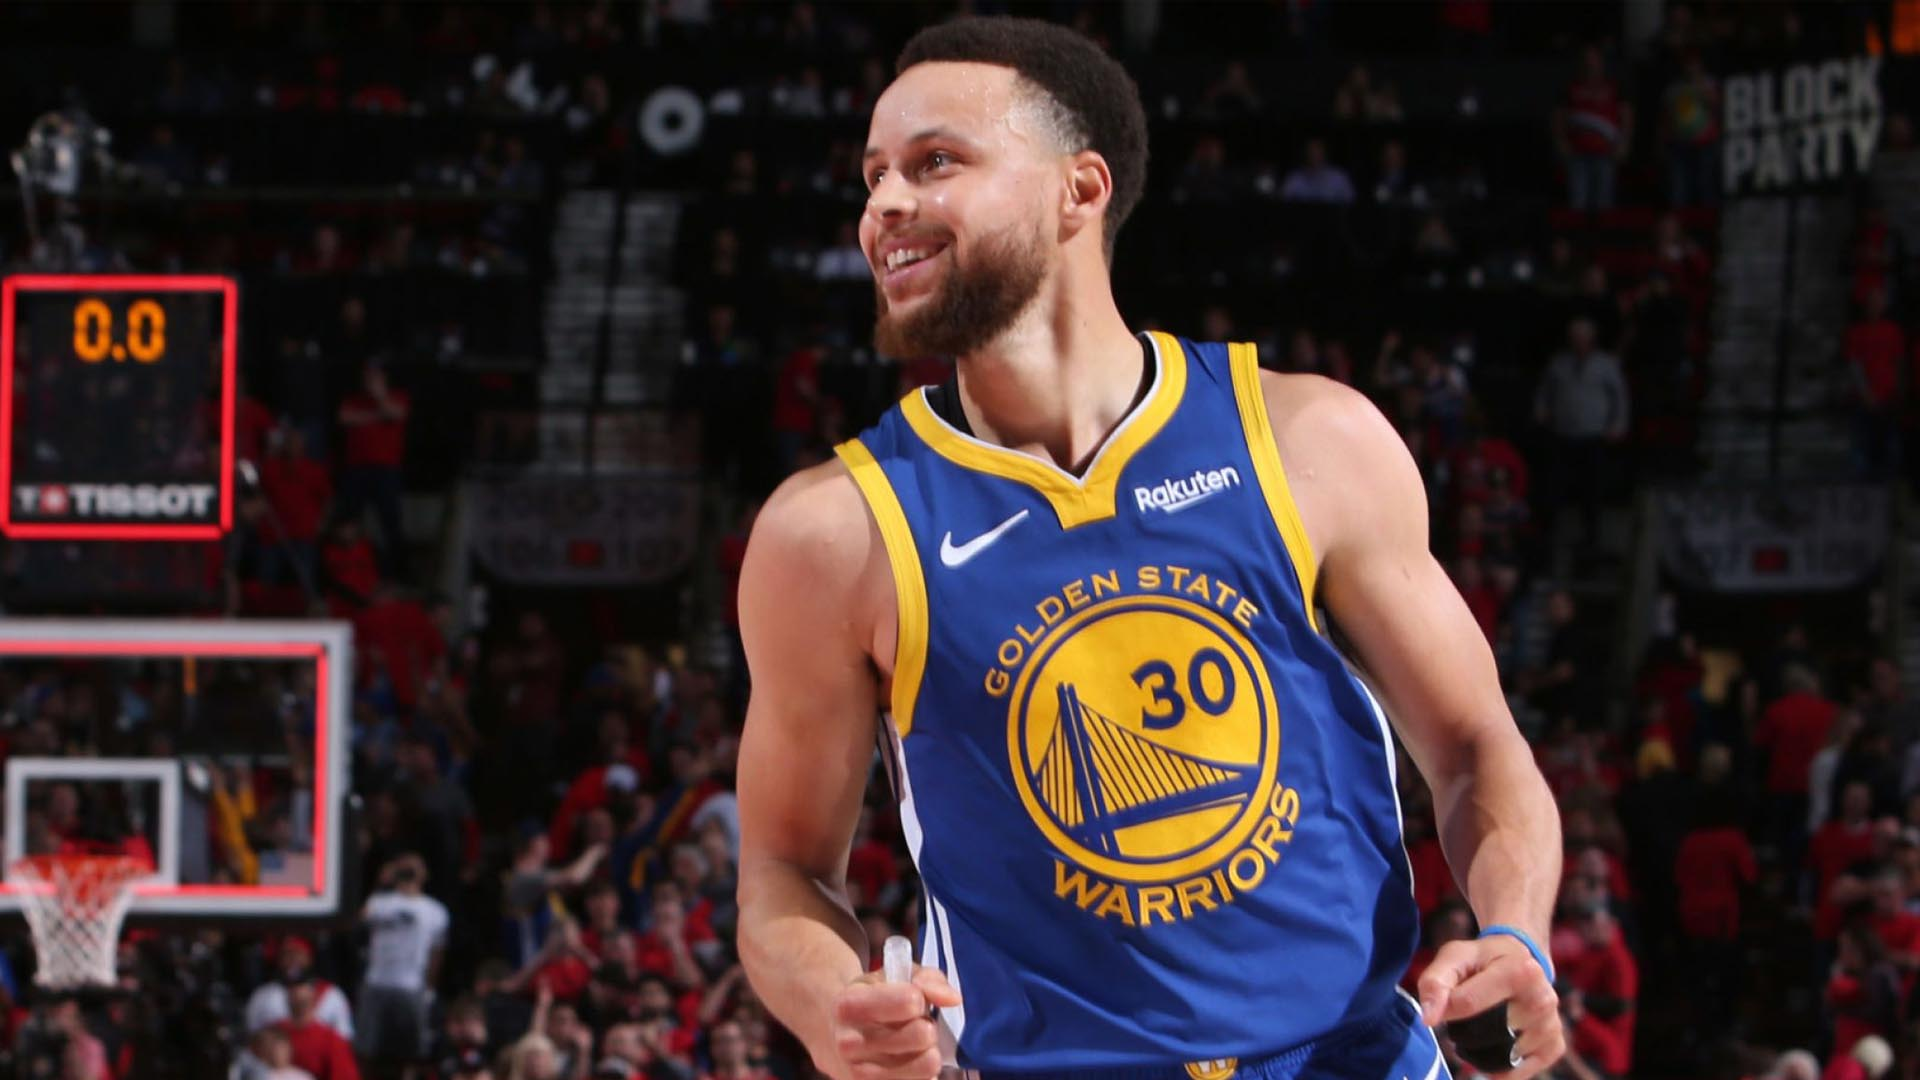 Purchase Stephen Curry NBA Jerseys From Nike Through Lemoney